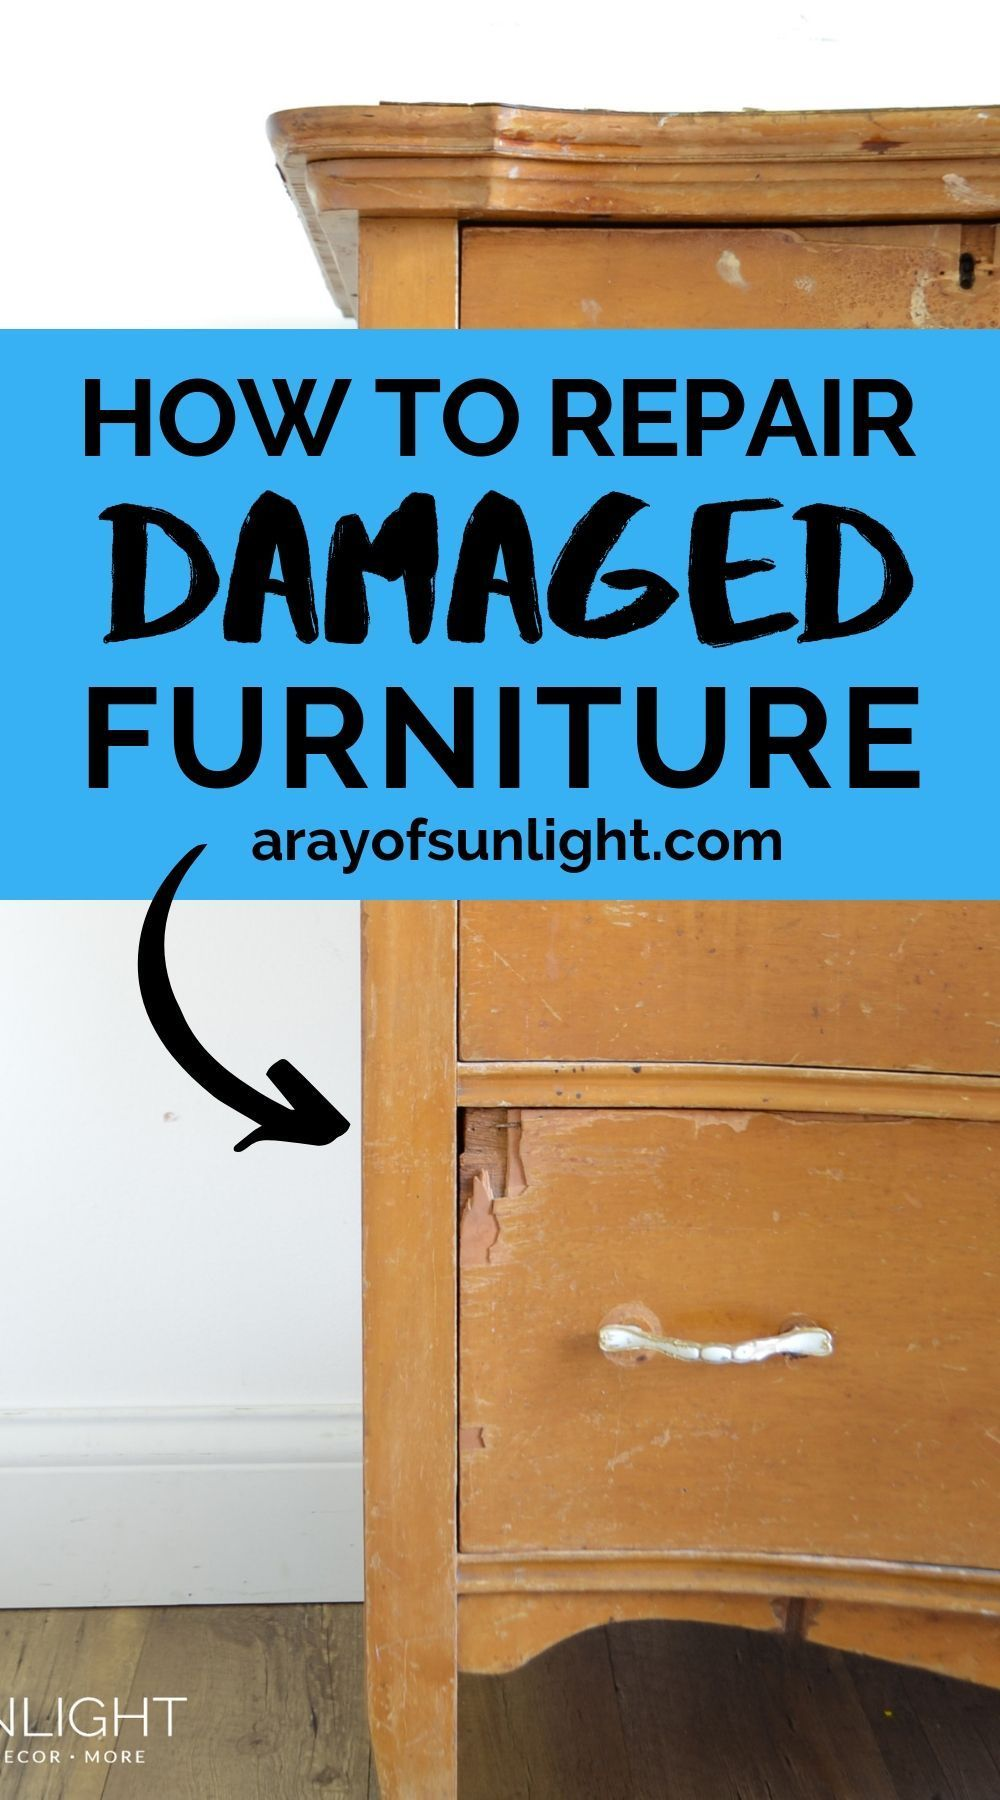 How To Repair Wood Furniture That Has Been Chewed By A Pet (With Images) | Repair wood furniture